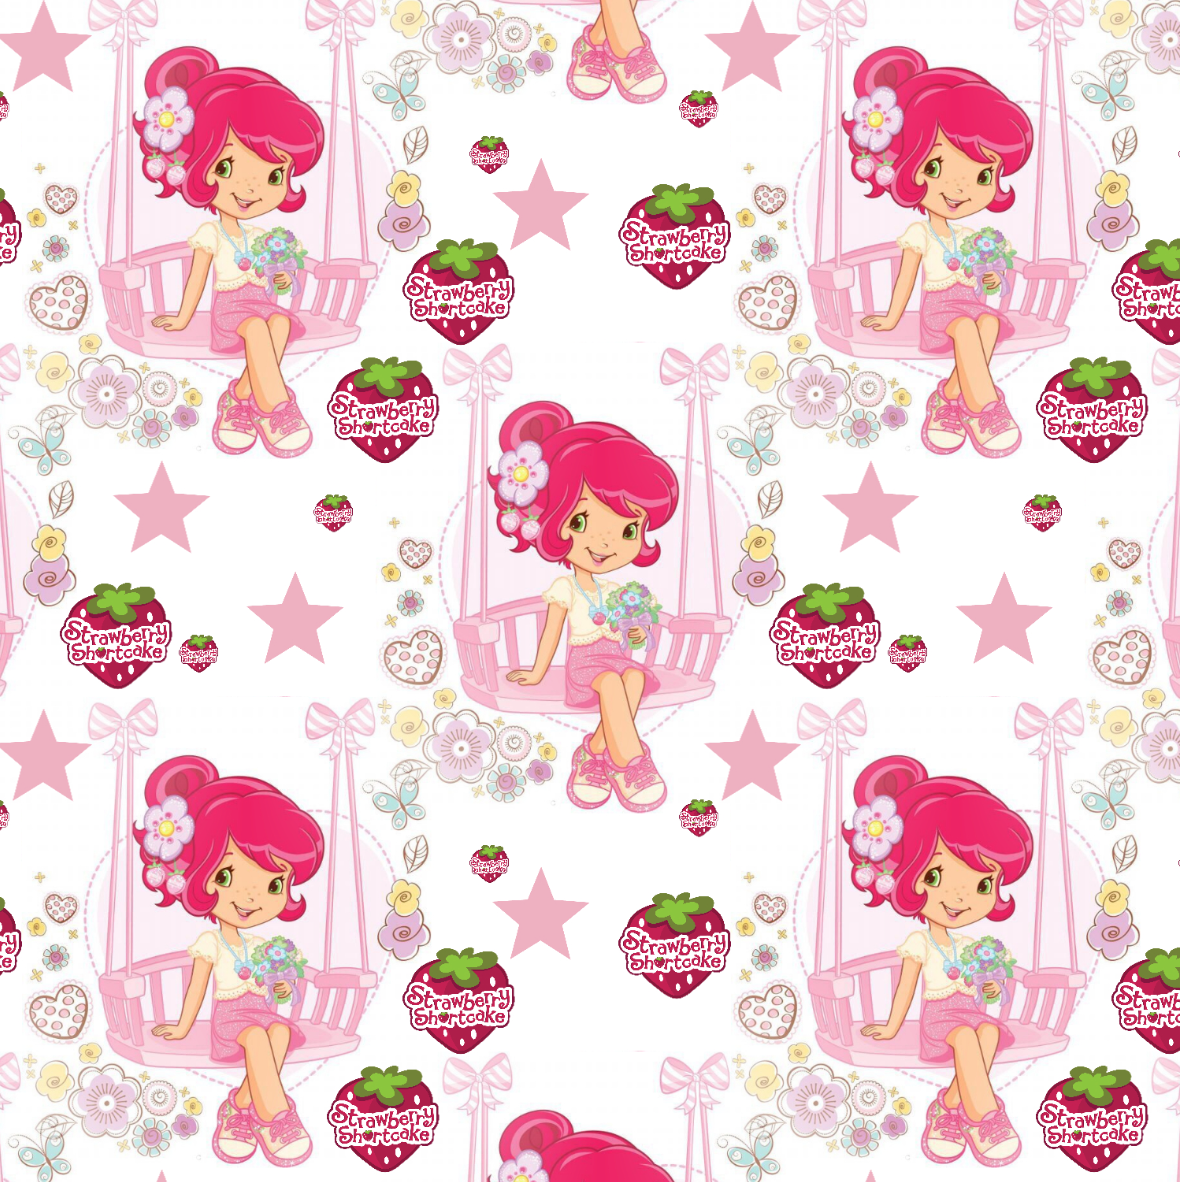 PRE ORDER - Strawberry Shortcake White - Digital Fabric Print